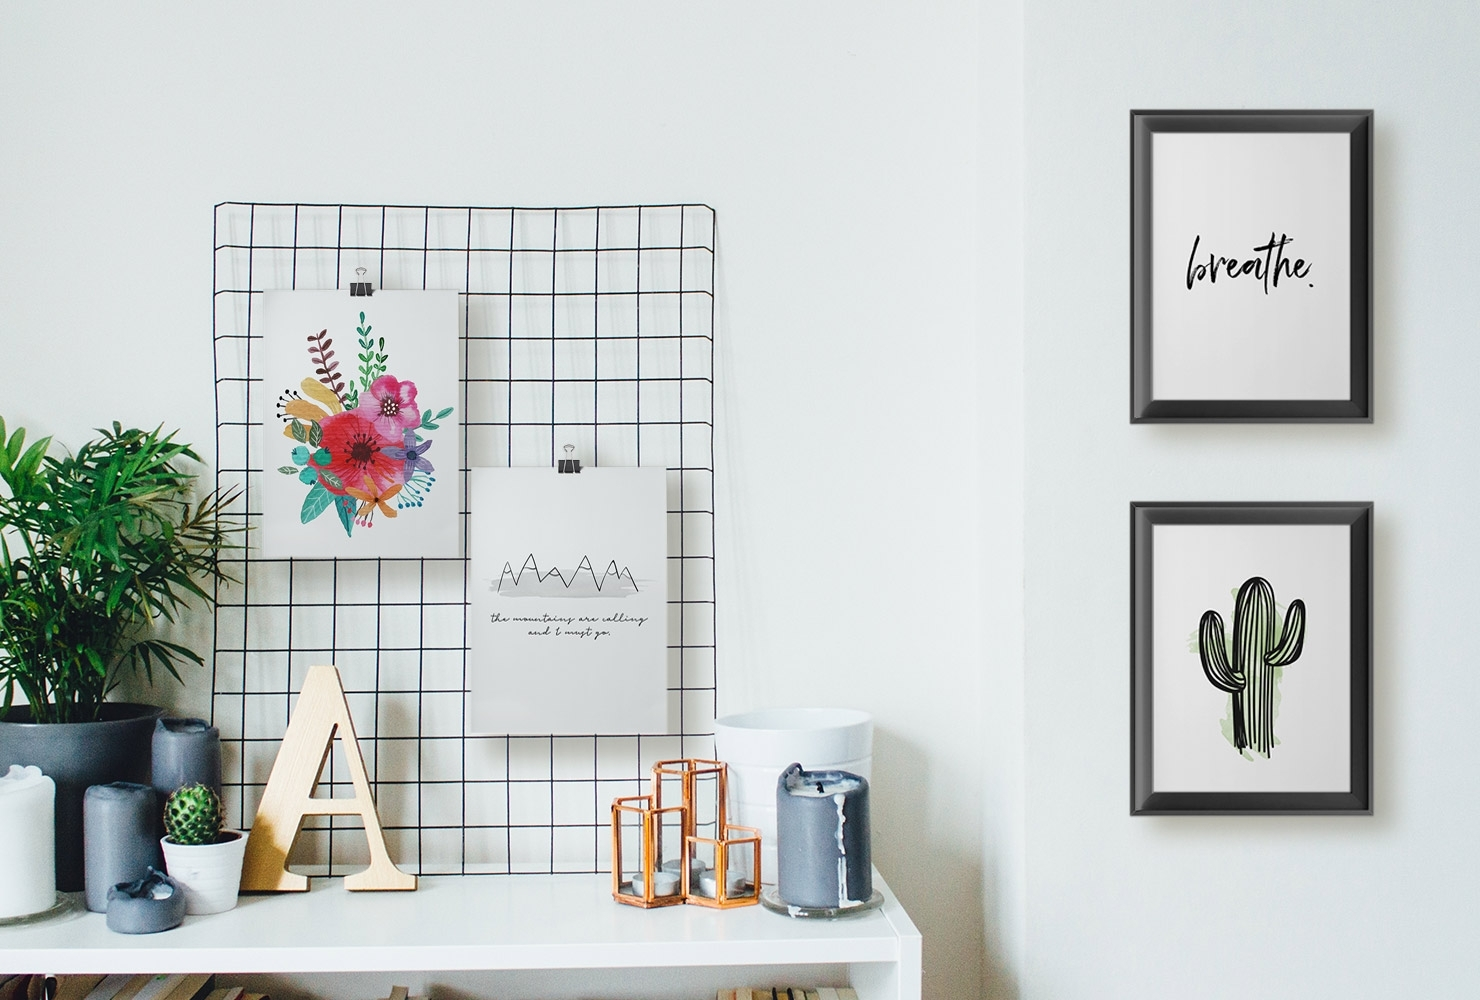 25 Unique Diy Wall Art Ideas (With Printables) | Shutterfly With Regard To Newest Unique Wall Art (View 2 of 15)